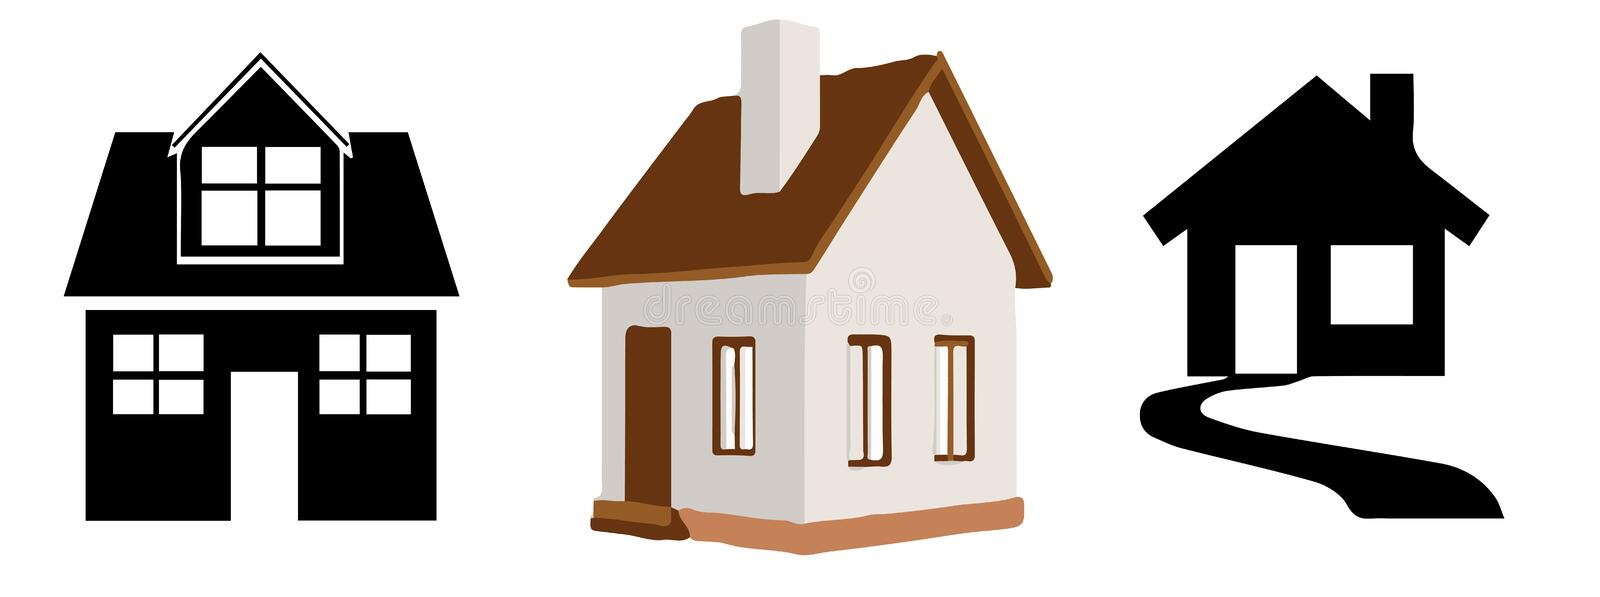 Houses icon on white background. Building,design vector illustration